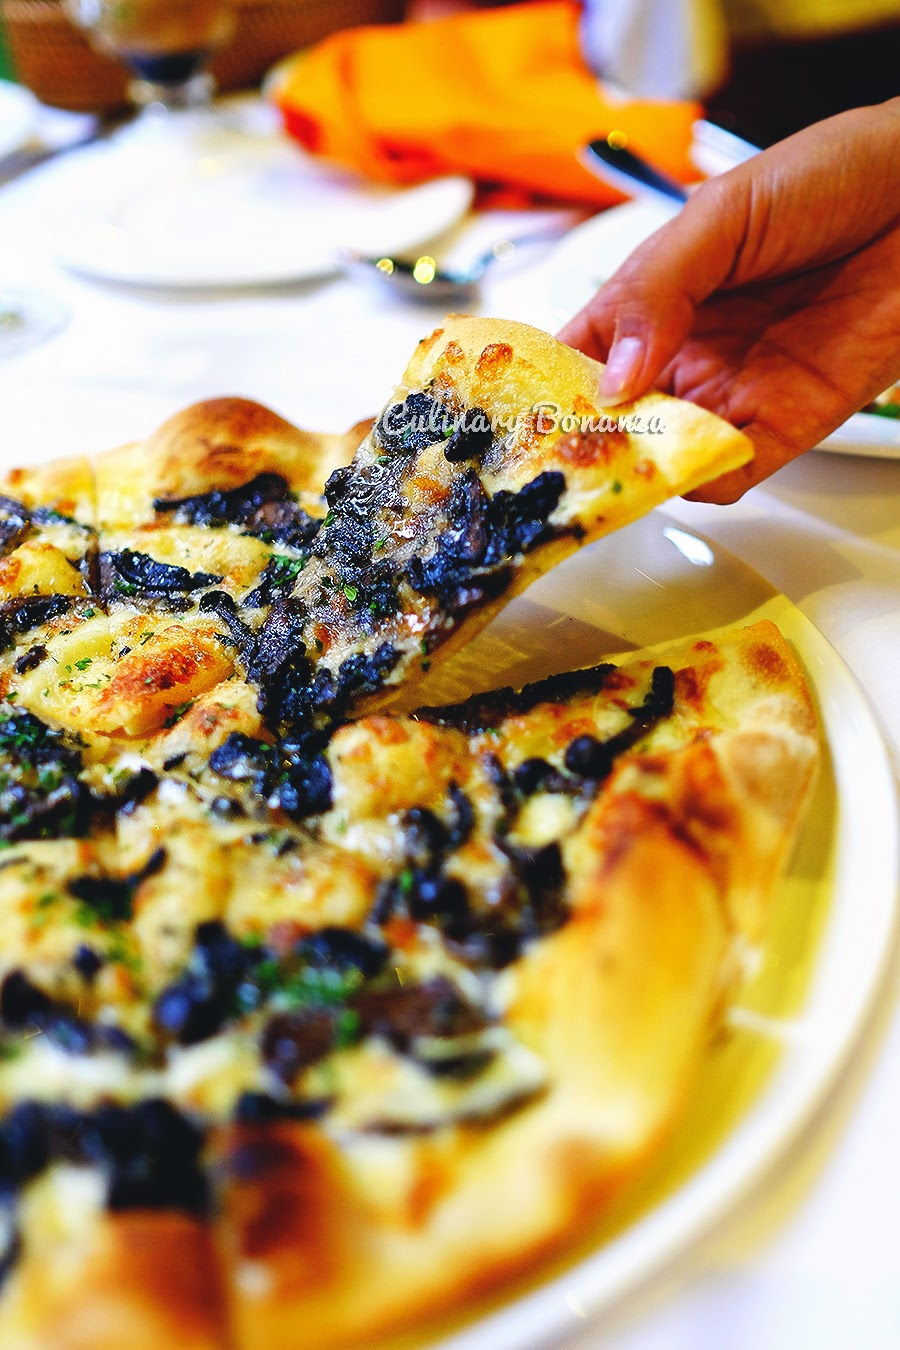 Pizza Con Funghi - Italian-style, crispy crusted pizza, topped with a medley wild mushroom, taleggio, fontina, thyme, truffle oil and shaved grana padano